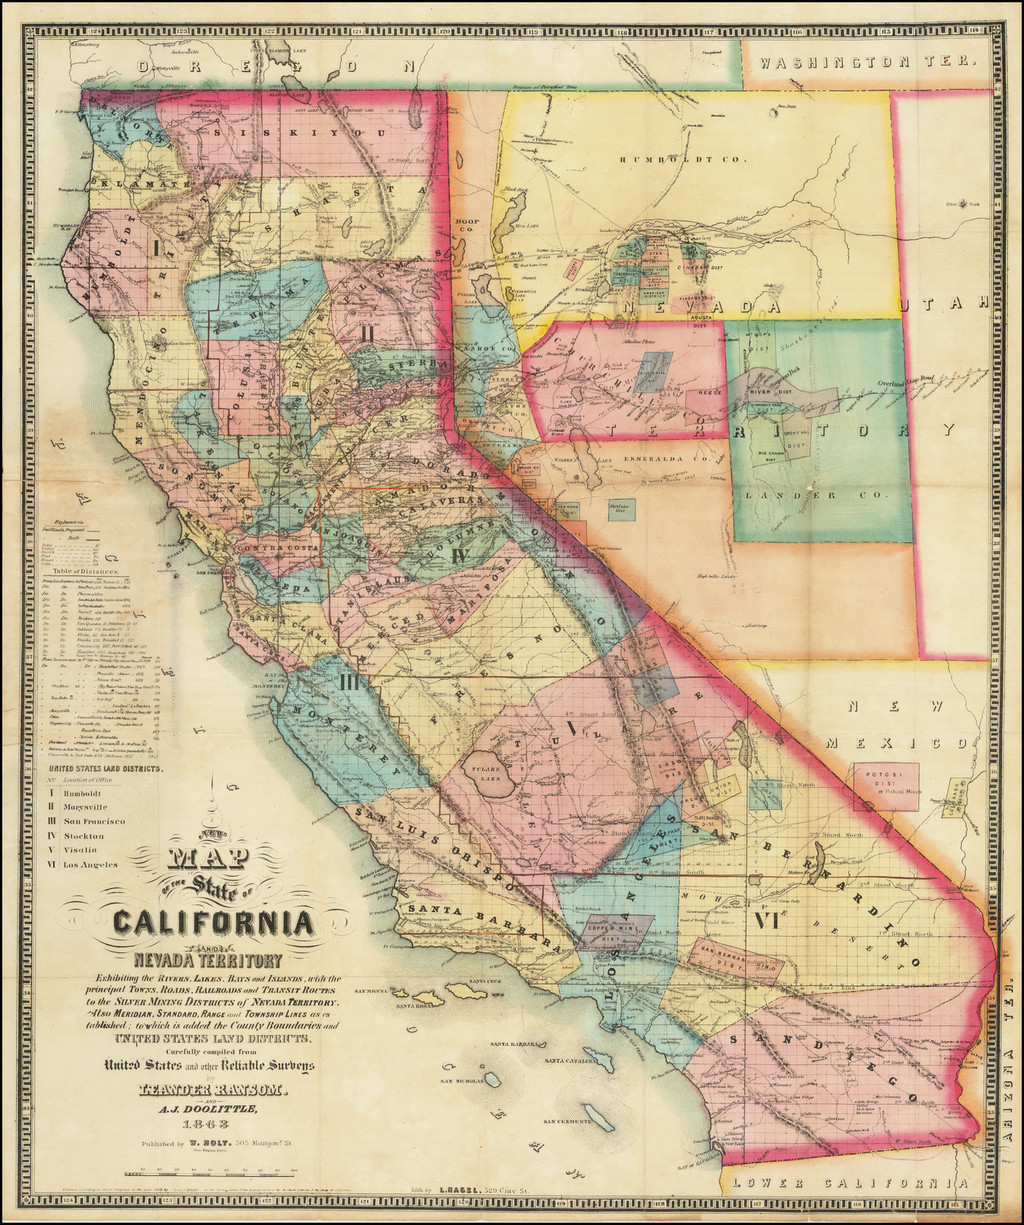 New Map of the State of California and Nevada Territory   Exhibiting the Rivers, Lakes, Bays and Islands, with the principal Towns, Roads, Railroads and Transit Routes to the Silver Mining Districts of Nevada Territory. . . 1863 [Pocket Map] By A.J. Doolittle  &  Leander Ransom